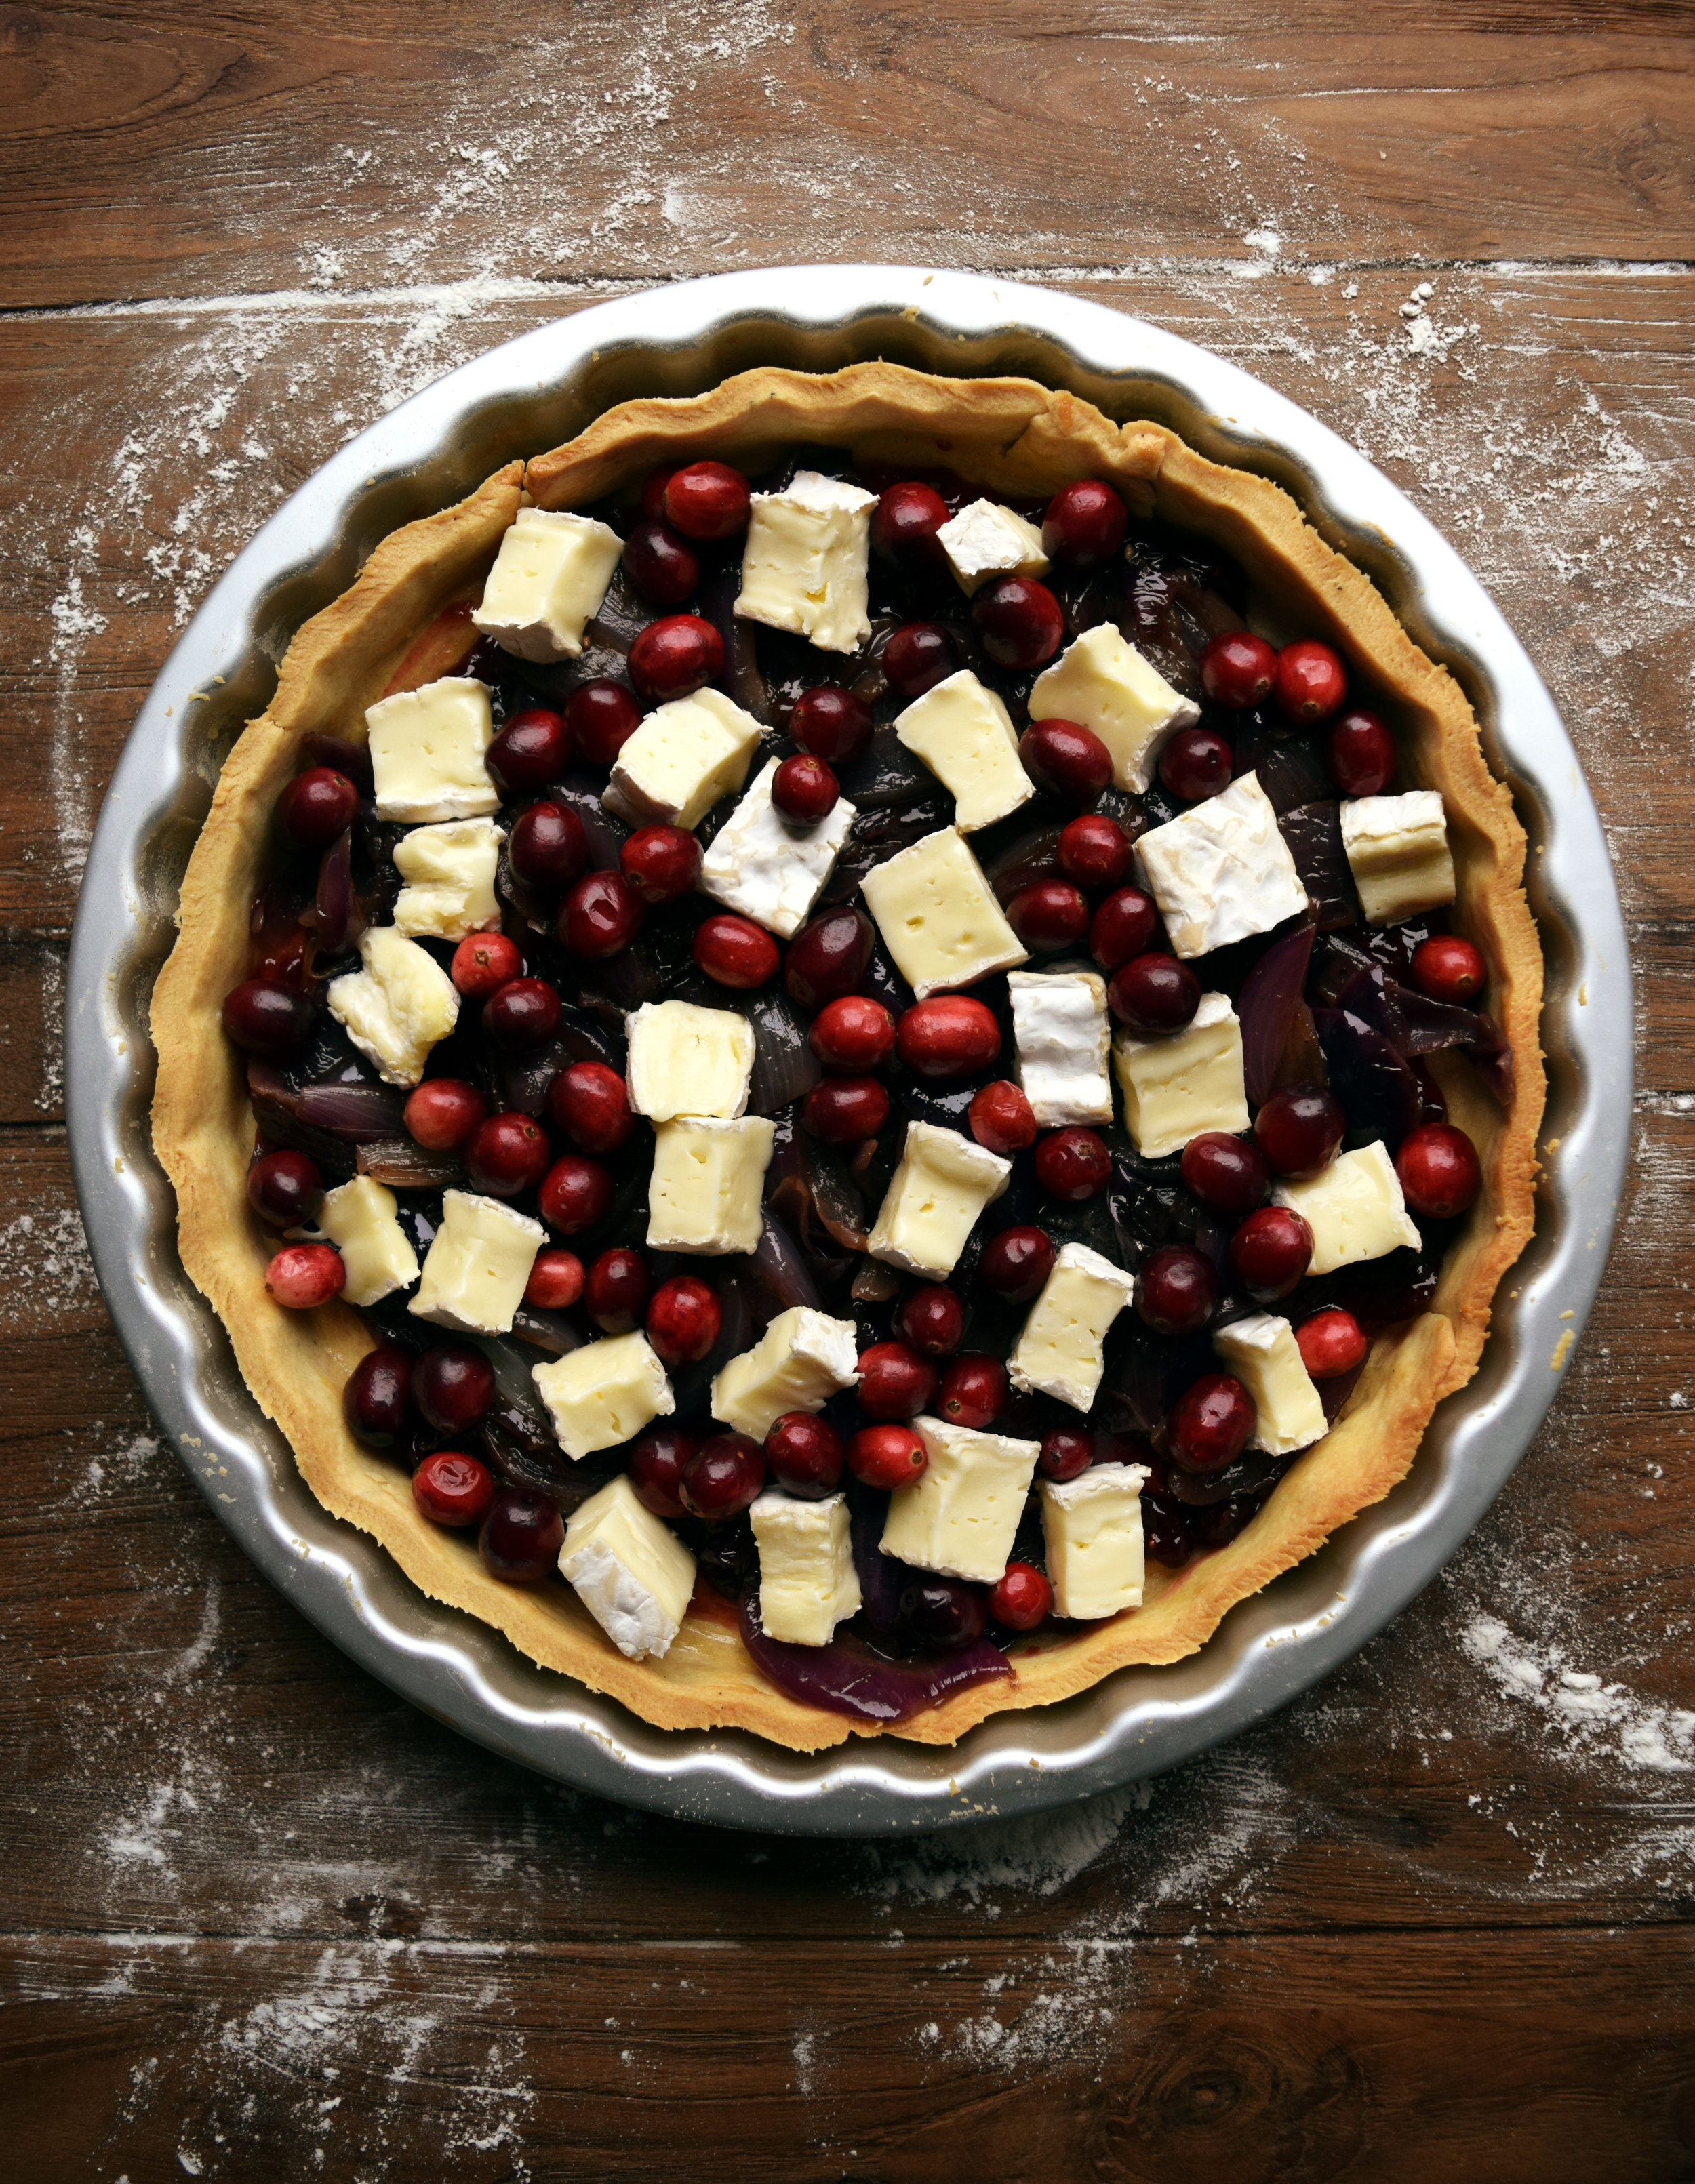 A festive tart filled with brie, cranberries and caramelised onions.